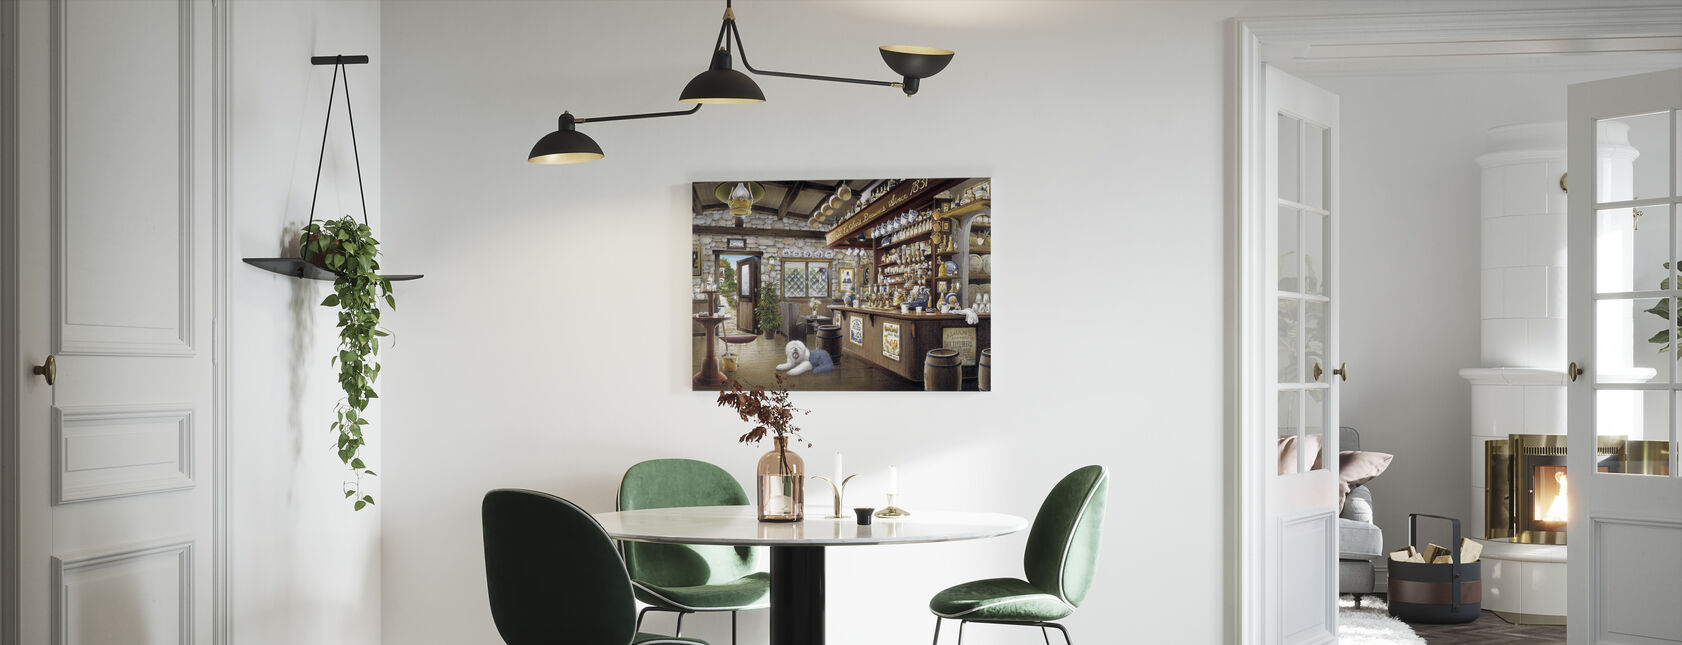 Old Pub with an English Sheepdog - Canvas print - Kitchen